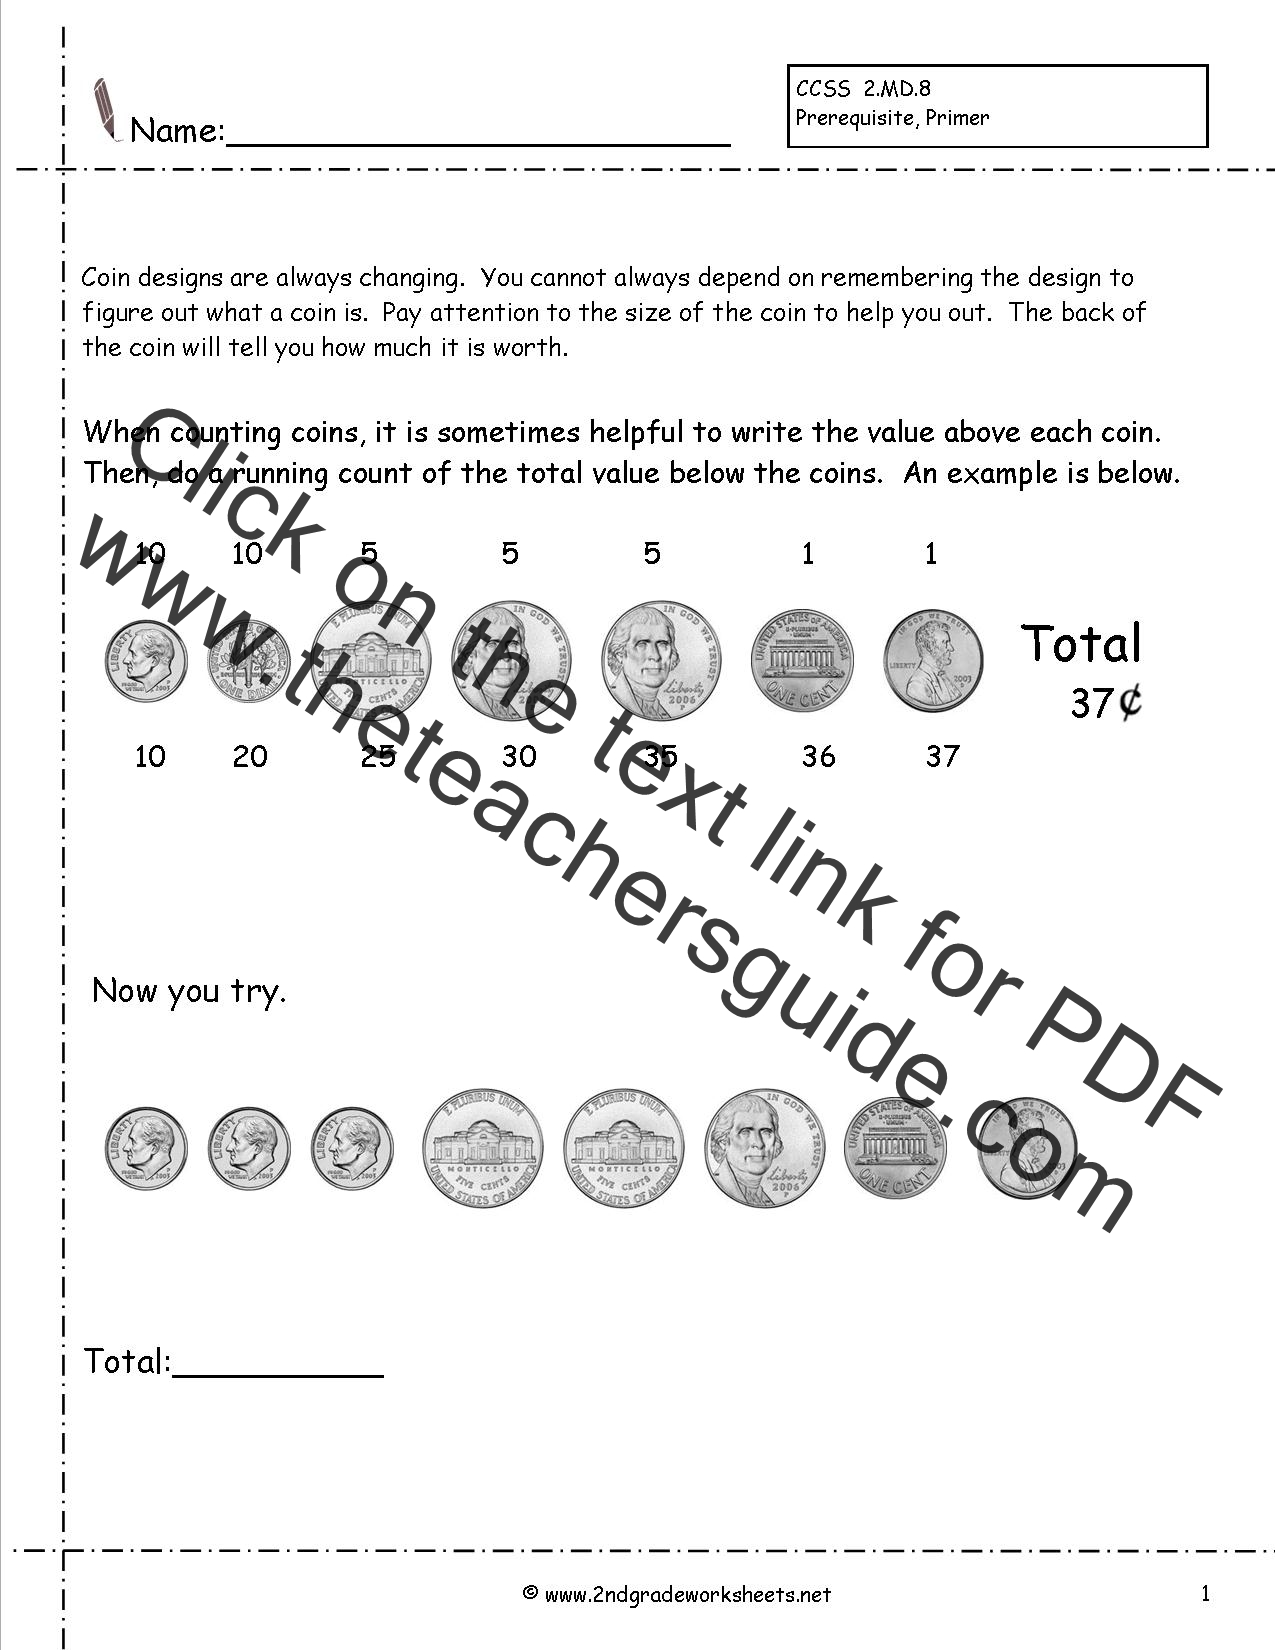 Worksheets Value Of Coins Worksheet counting coins and money worksheets printouts introduction